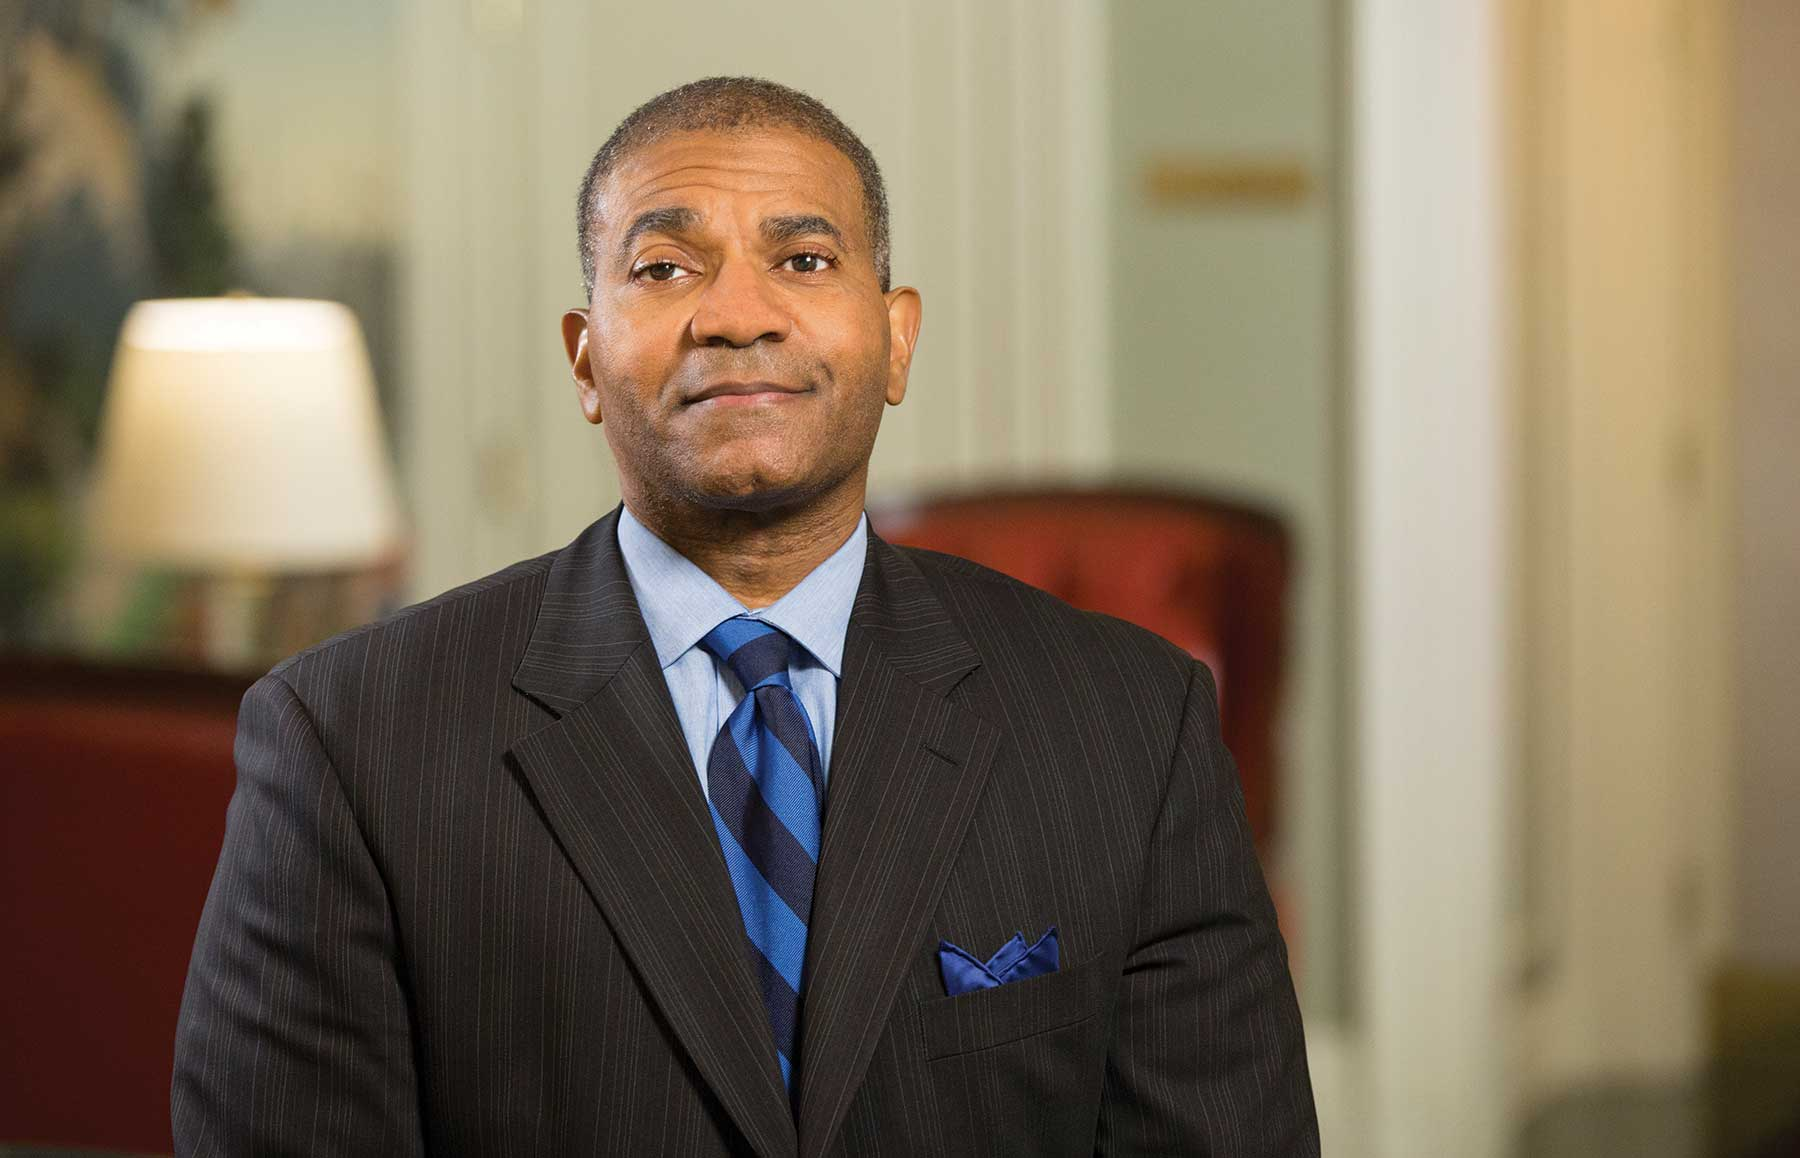 Wisconsin Housing Preservation Corp. Announces the Appointment of Erbert Johnson as Chairman of the Board